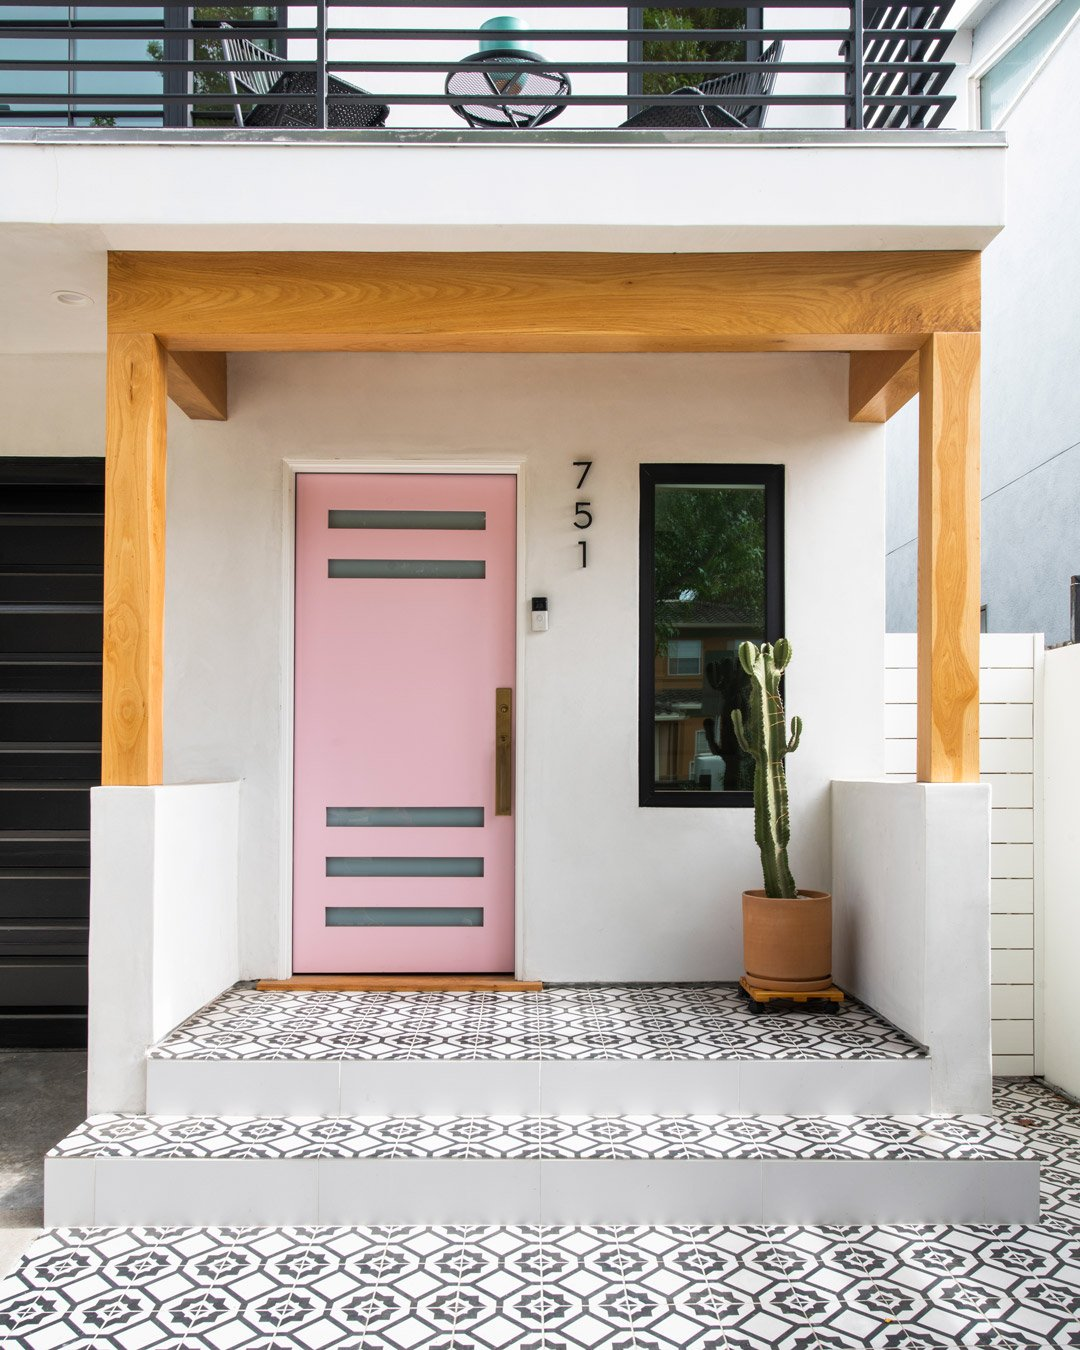 California modern stucco exterior entryway with pink art deco door and Spanish tile